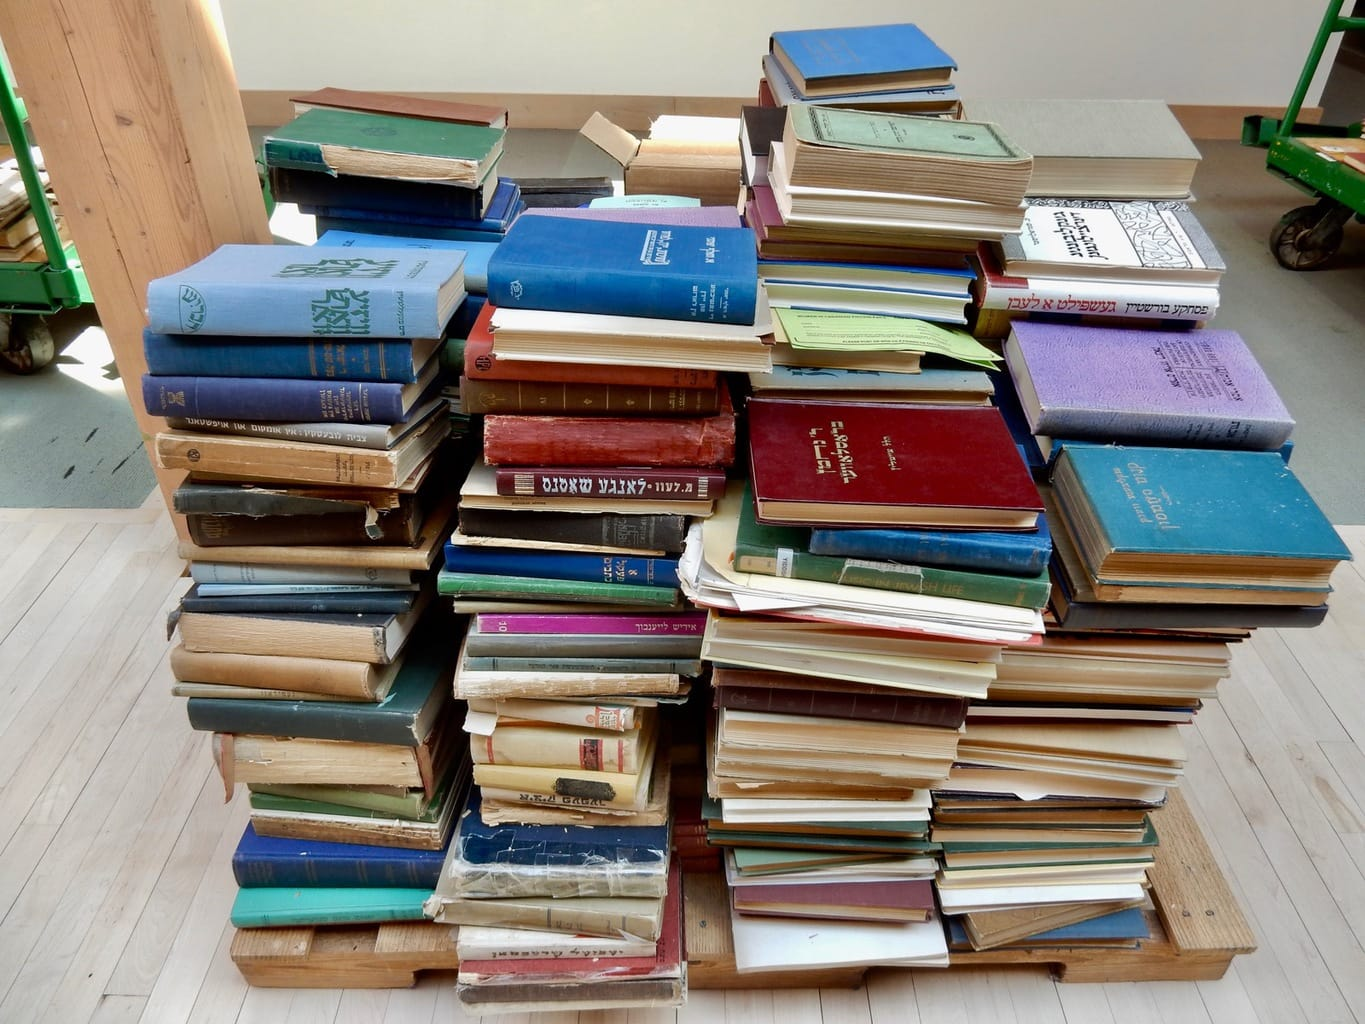 Stacks of Books at one of the literary spots on our East Coast bucket list.